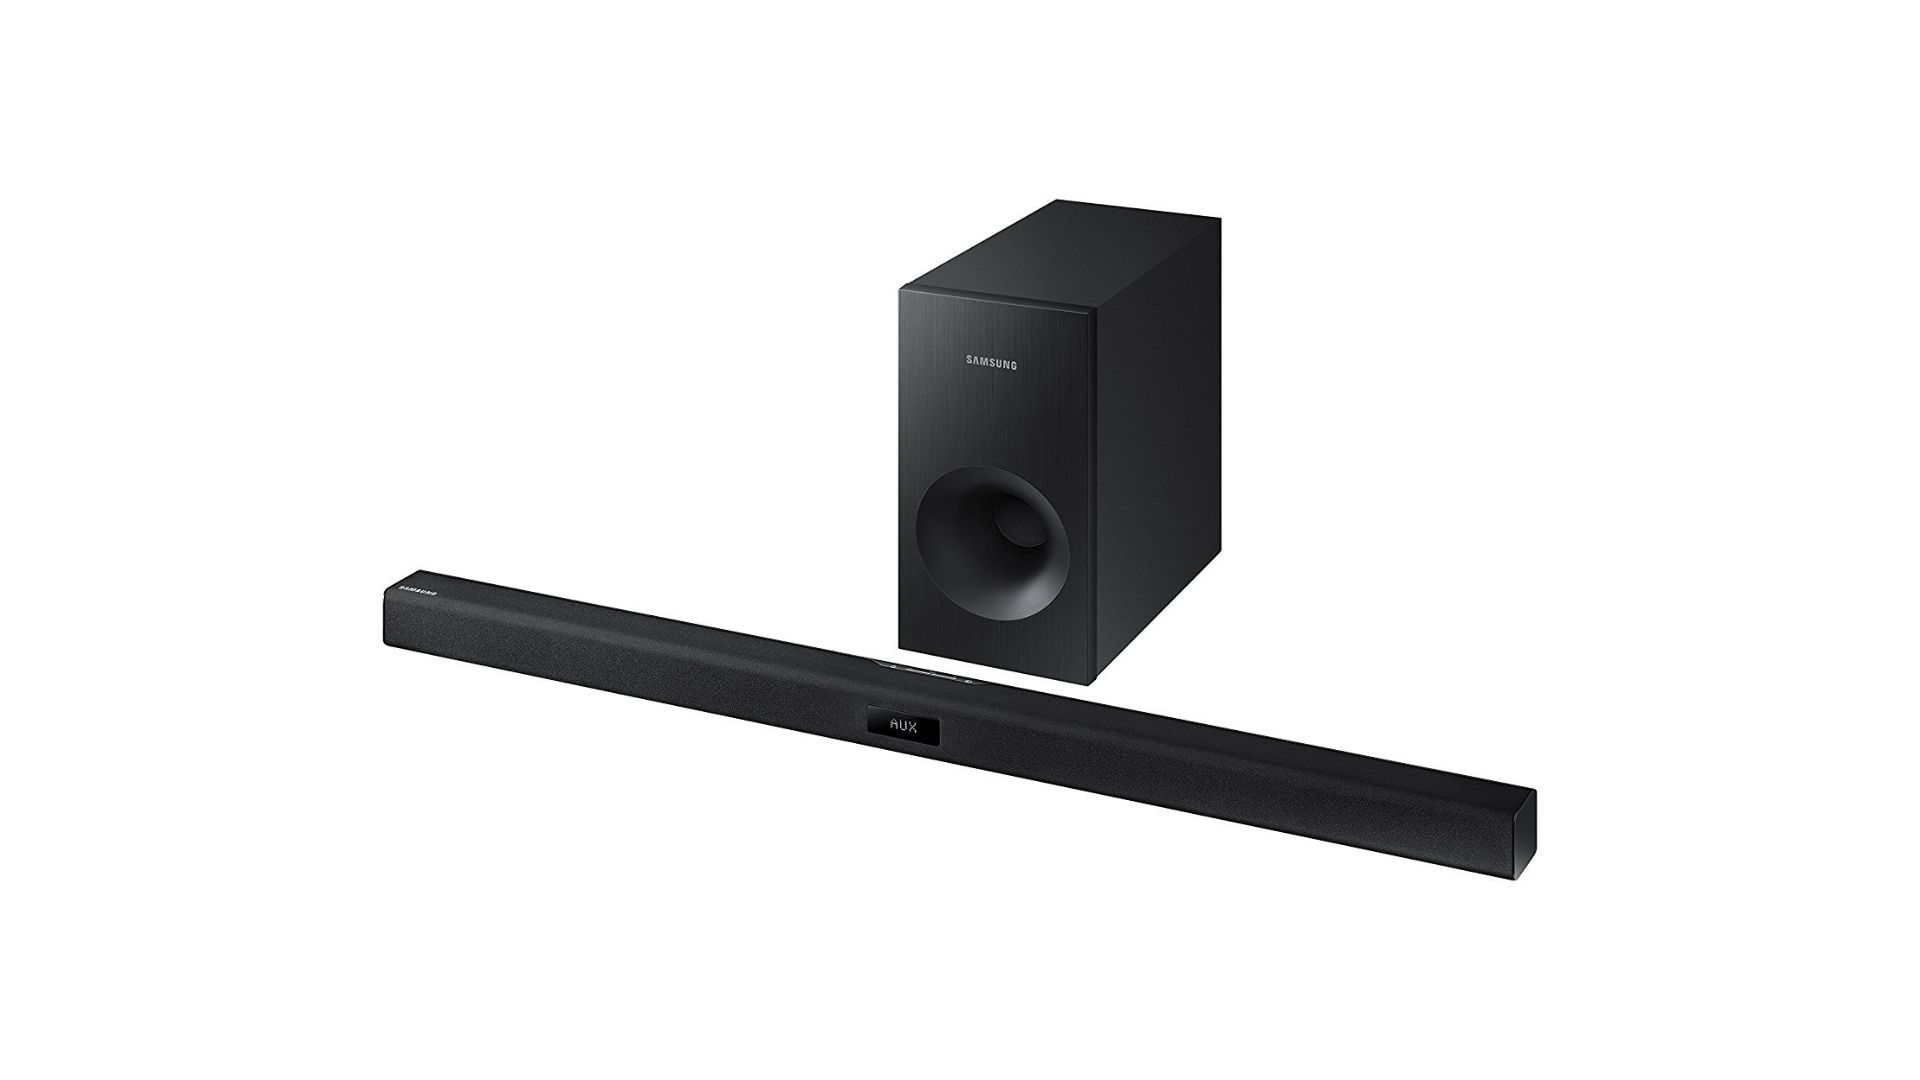 Best Soundbar Under 200 - Samsung HW-J355 2.1 Audio Soundbar